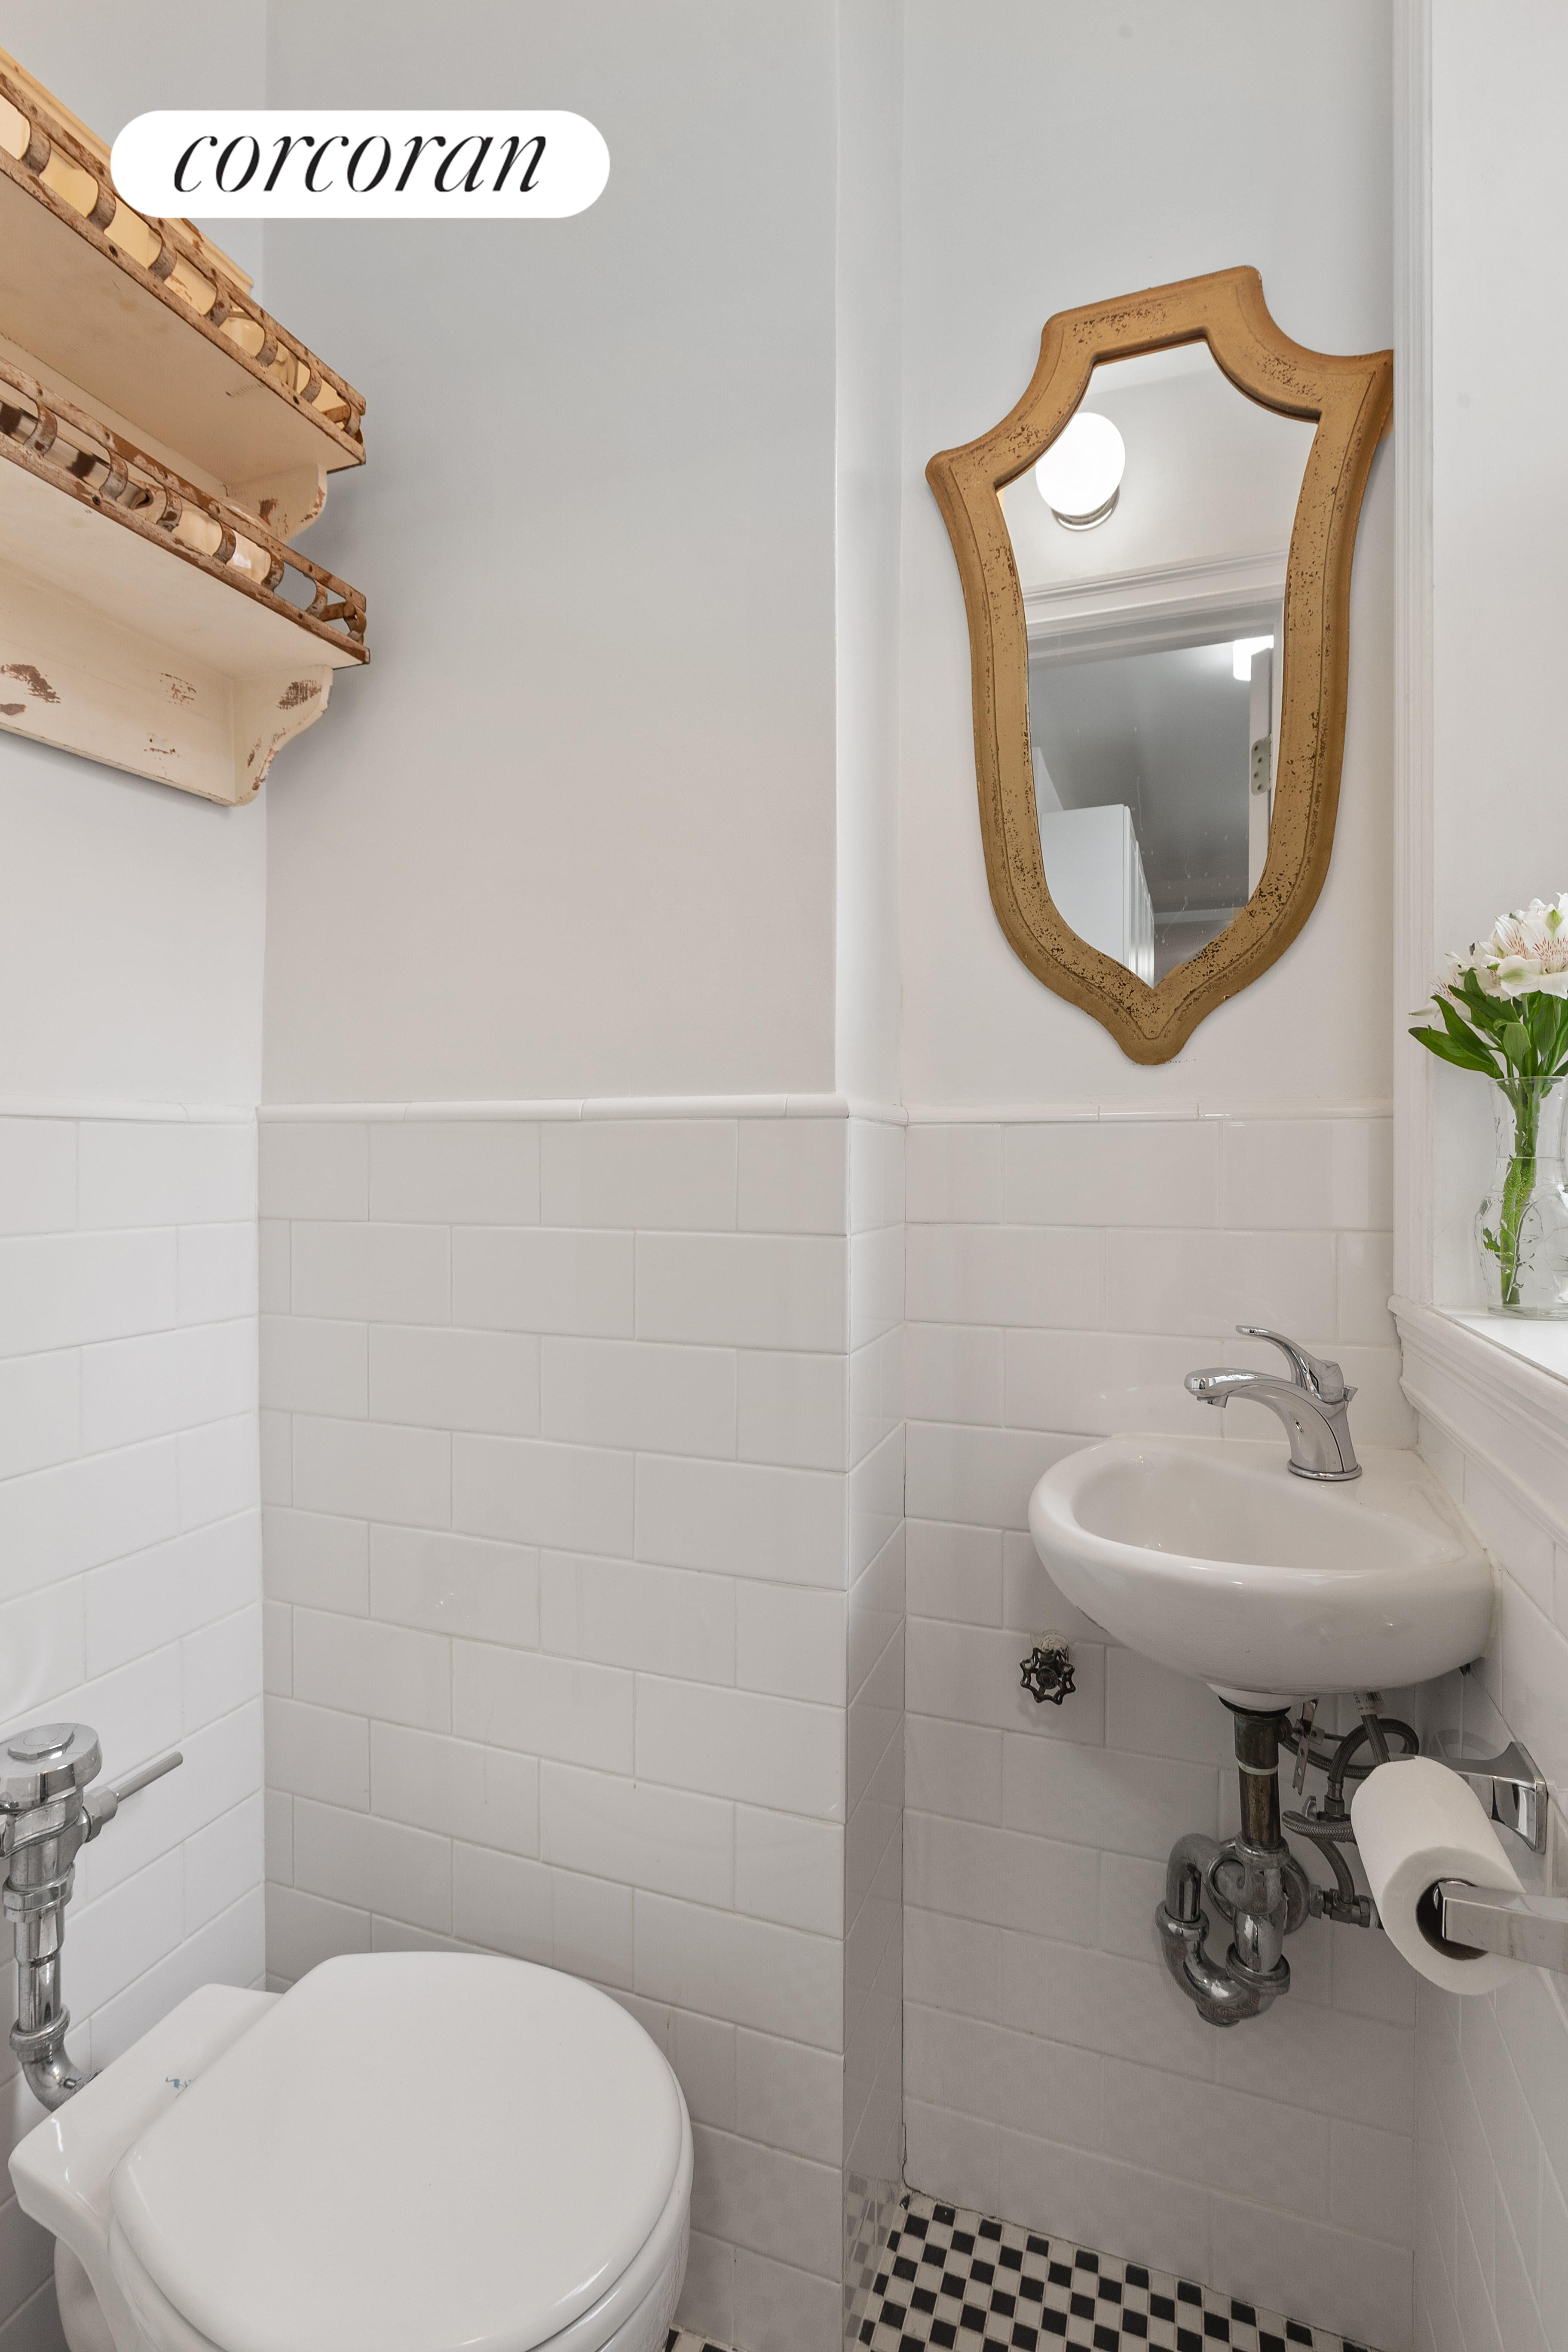 Apartment for sale at 241 West 97th Street, Apt 7L